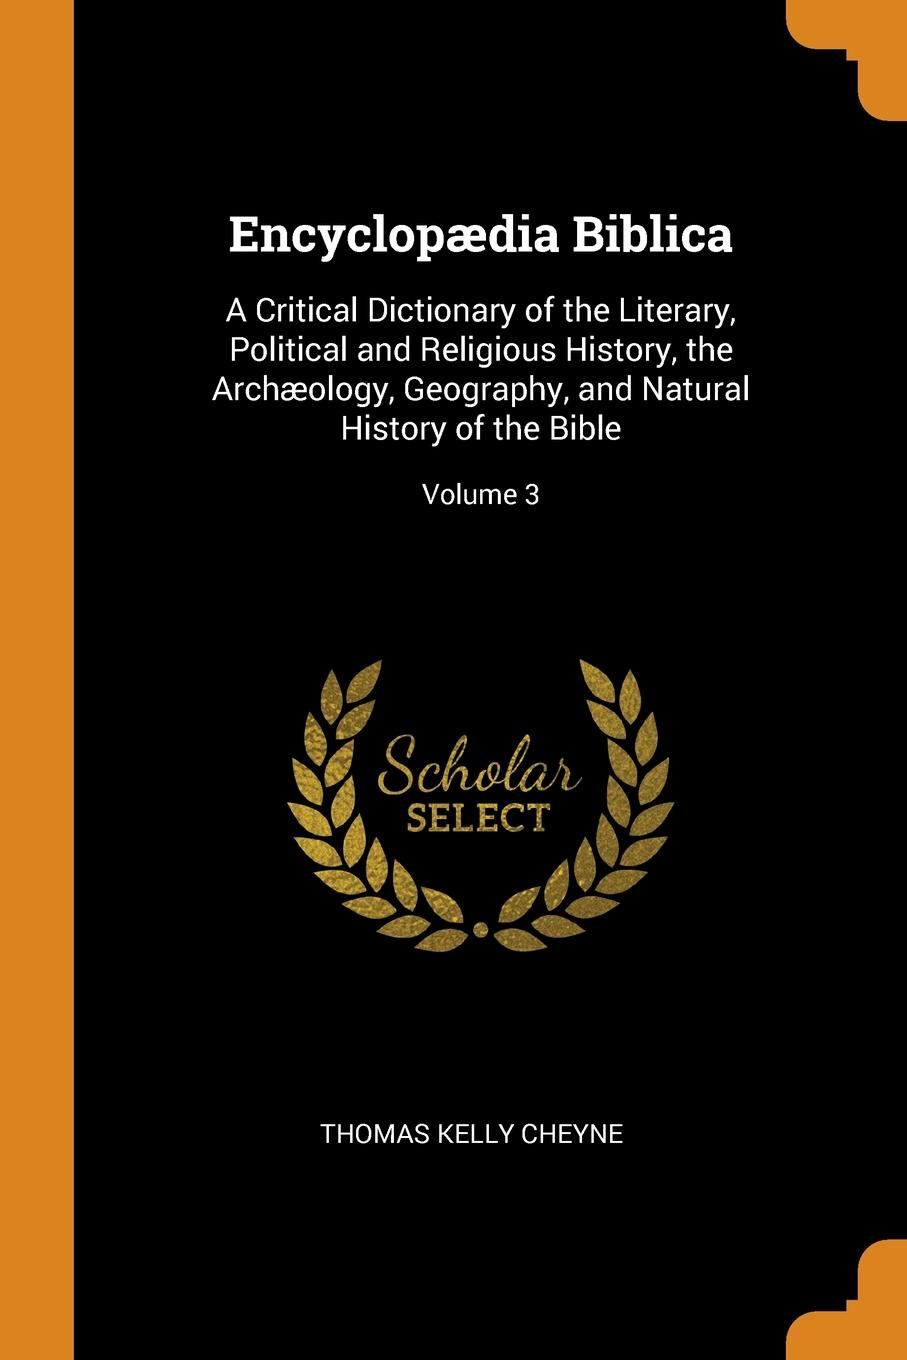 Encyclopaedia-Biblica-A-Critical-Dictionary-of-the-Literary-Political-and-Religious-History-the-Archaeology-Geography-and-Natural-History-of-the-Bible